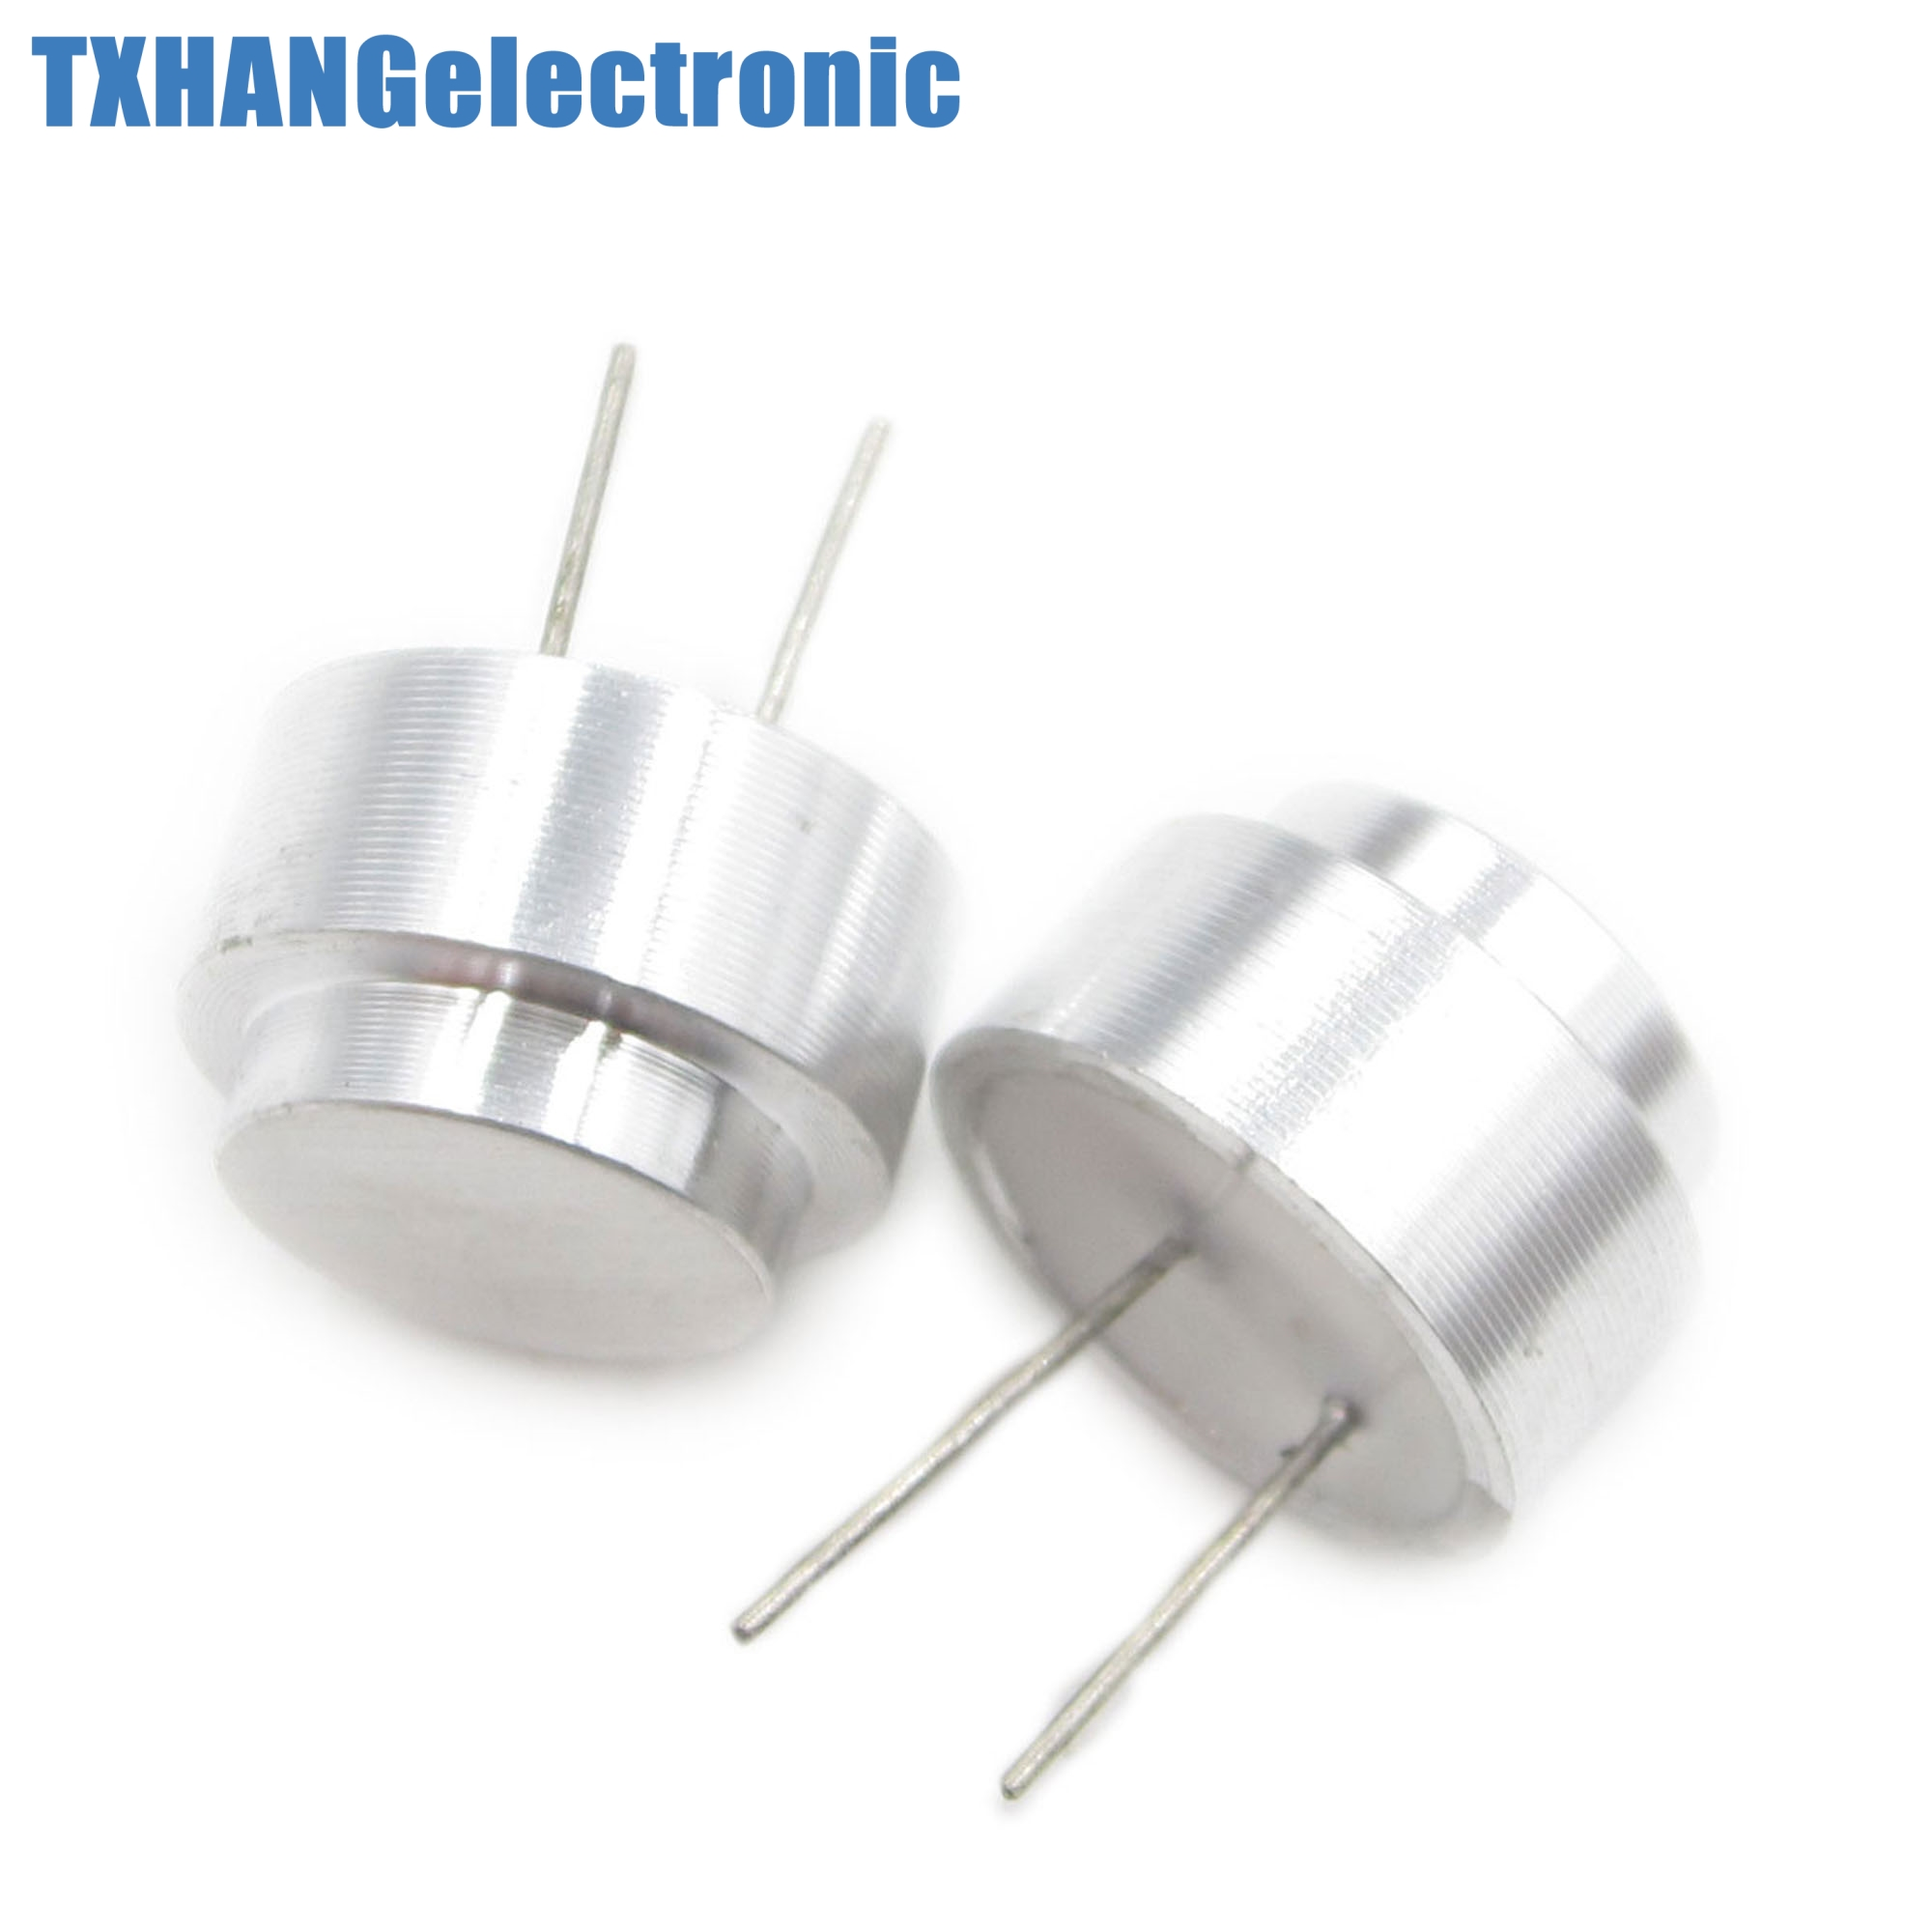 Ultrasonic Sensors Integrated Transceiver Waterproof Diameter 16mm 40khz Transmitter Circuit Probe In Circuits From Electronic Components Supplies On